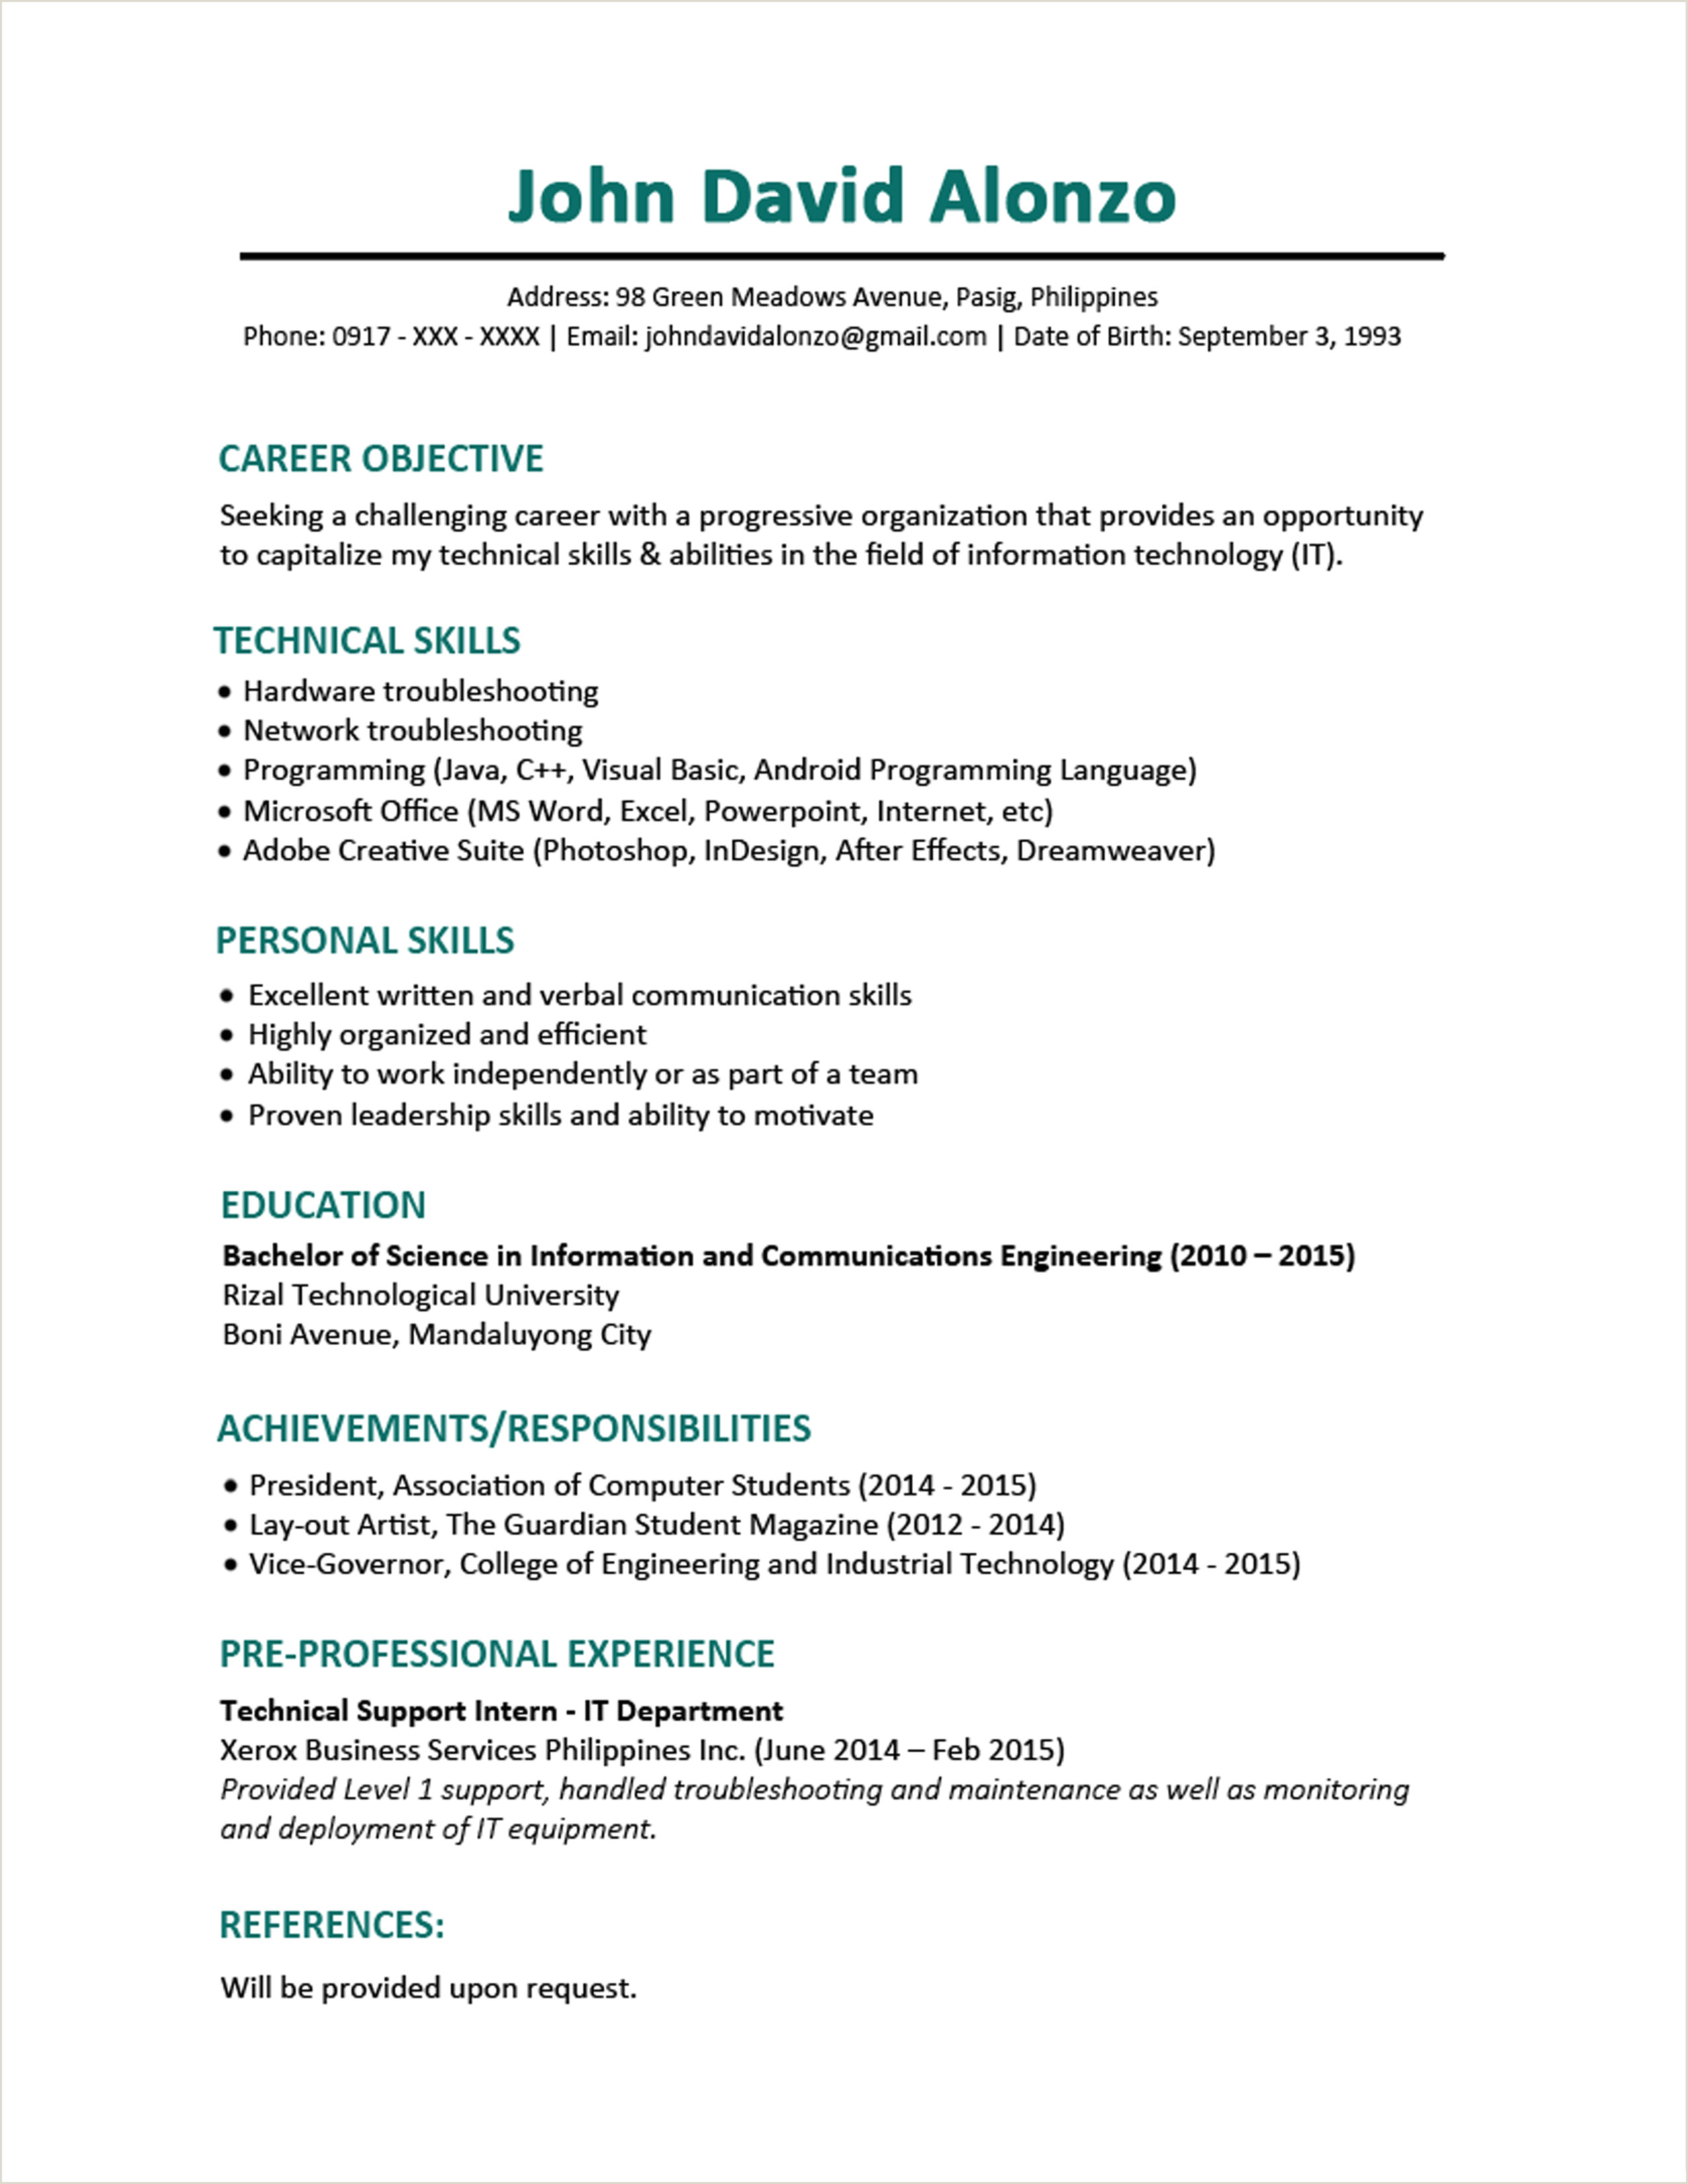 Fresher Resume format for Hotel Management Pin by Resumance On Resume Templates